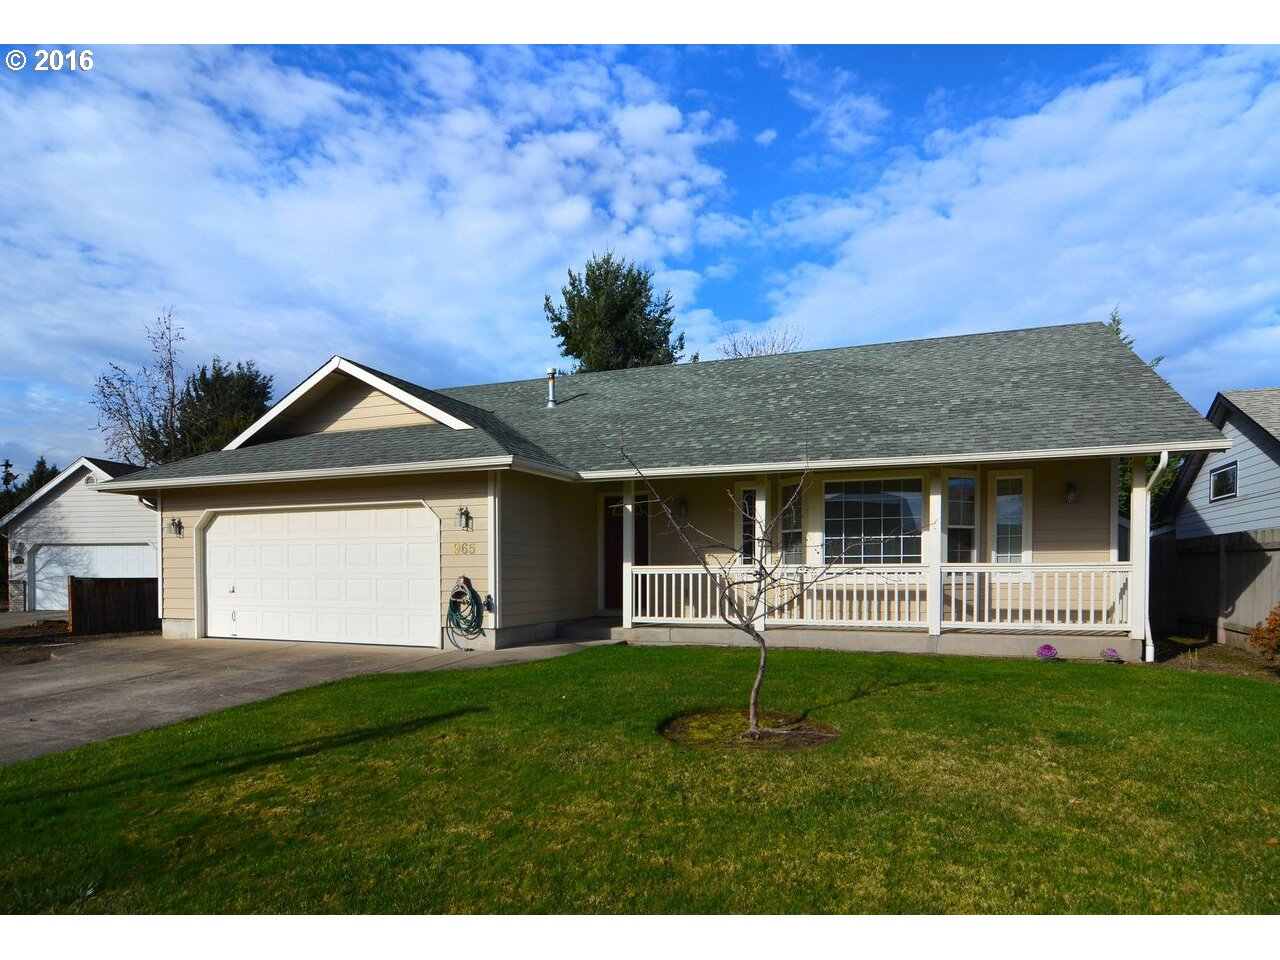 965 GREENWICH AVE, Eugene OR 97404